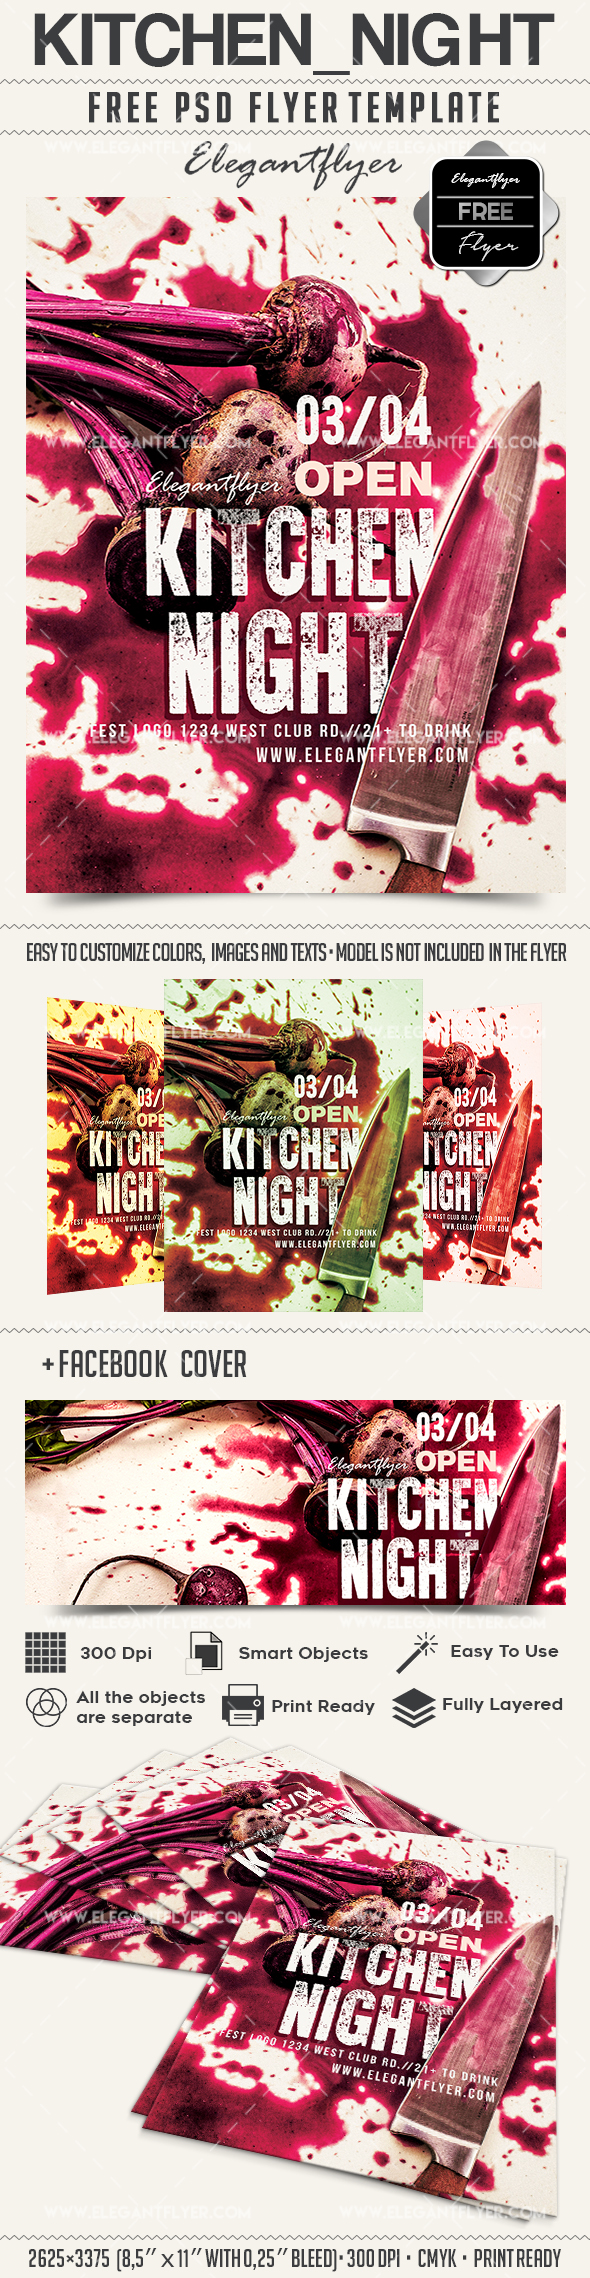 Kitchen night – Free Flyer PSD Template